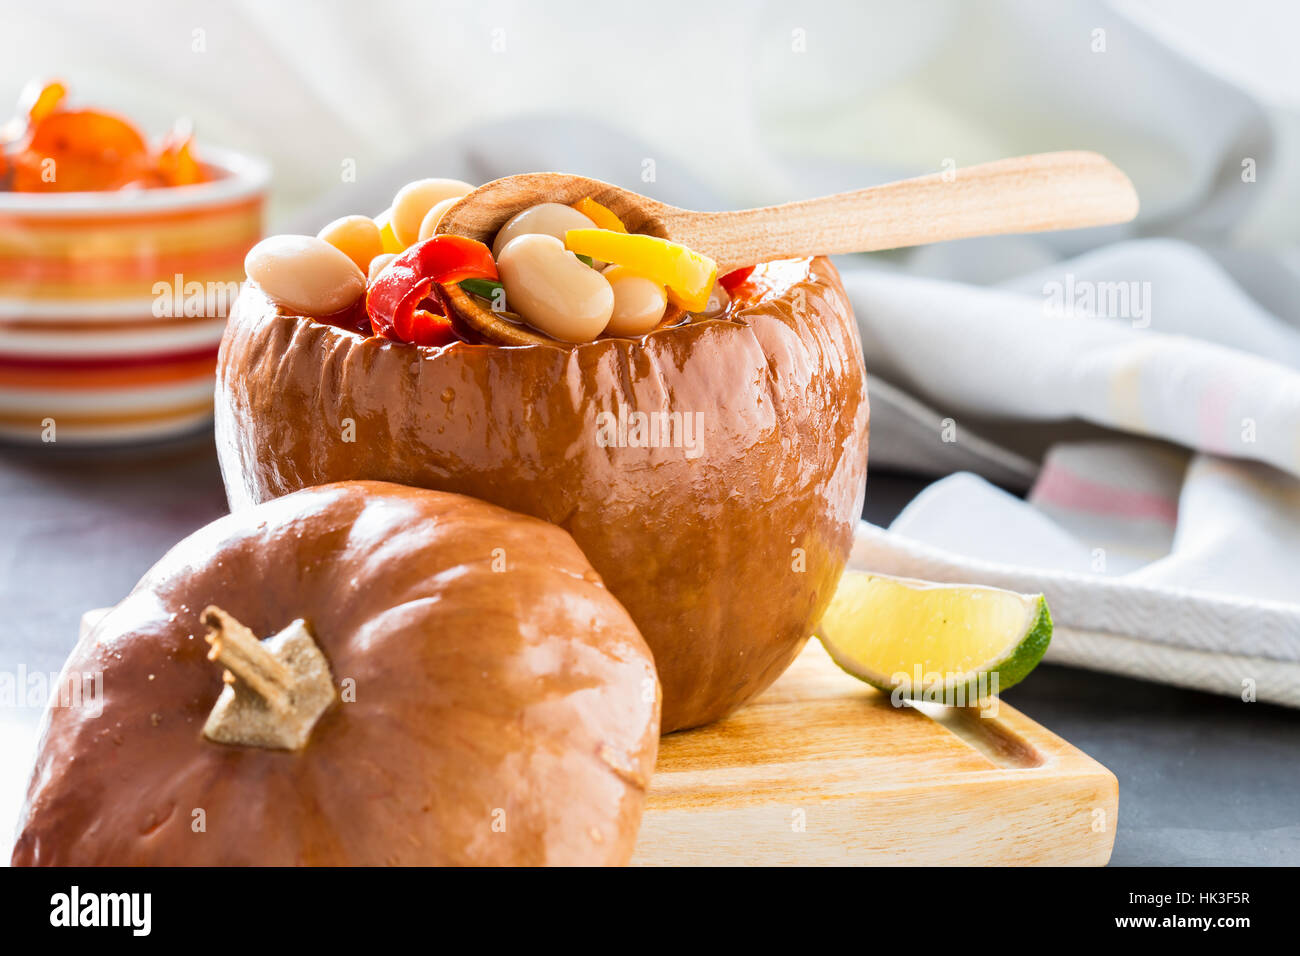 White bean and red pepper vegetables stew in pumpkin bowls served on wooden board - Stock Image